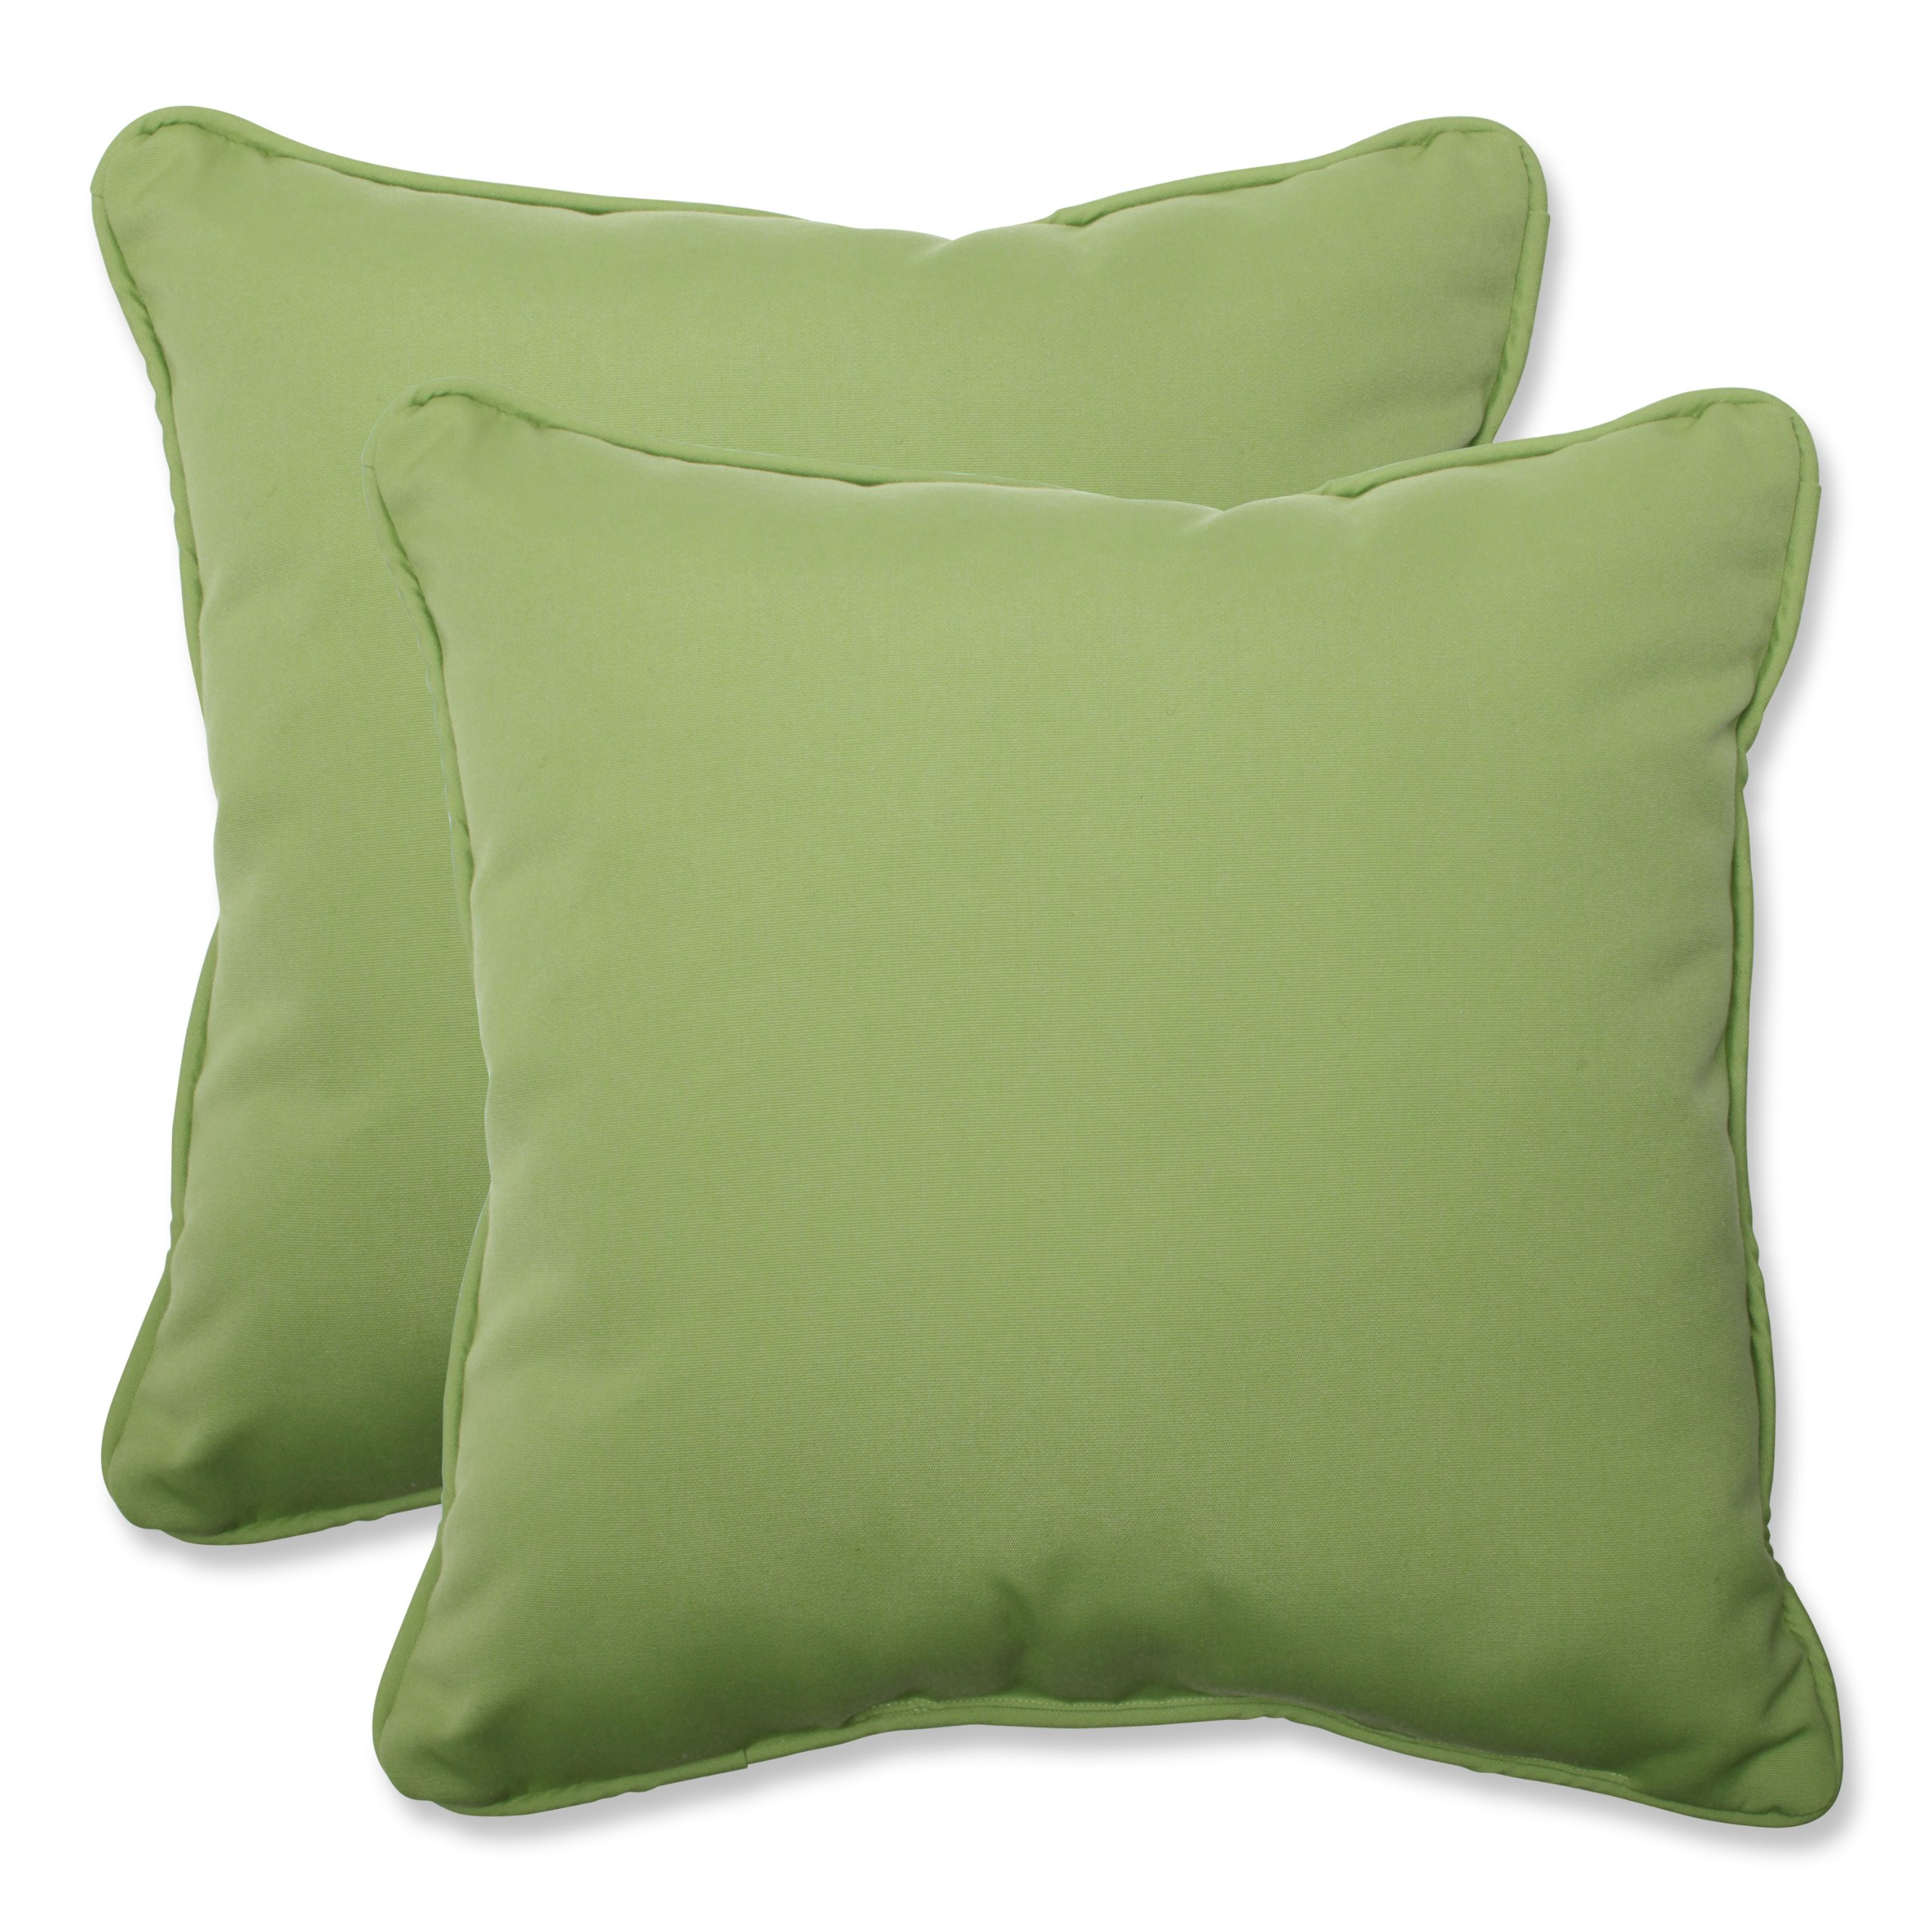 Pillow Perfect Indoor/Outdoor 18.5-inch Throw Pillow (Set of 2) with Sunbrella Canvas Ginkgo Fabric, 18.5 in. L X 18.5 in. W X 5 in. D